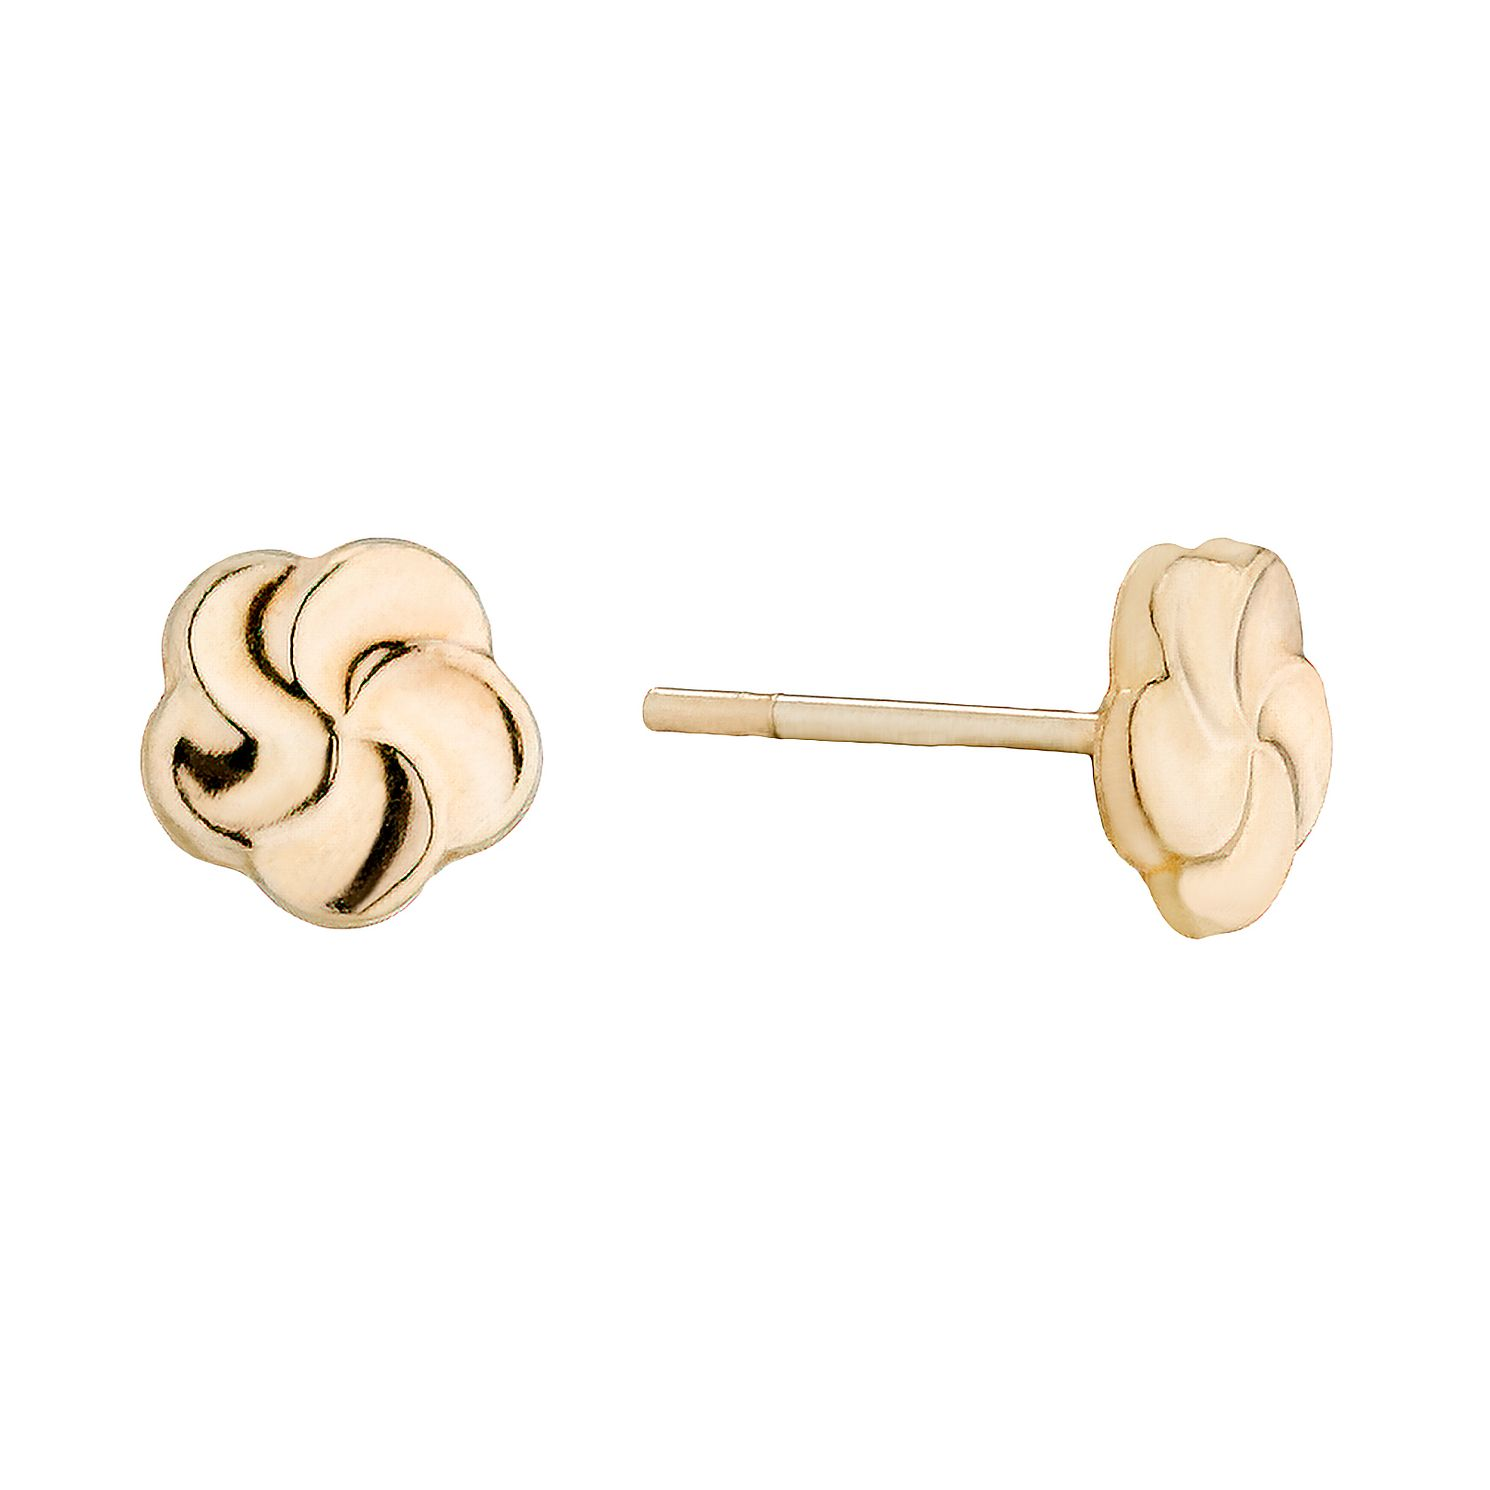 9ct Gold Swirl Stud Earrings - Product number 1357689